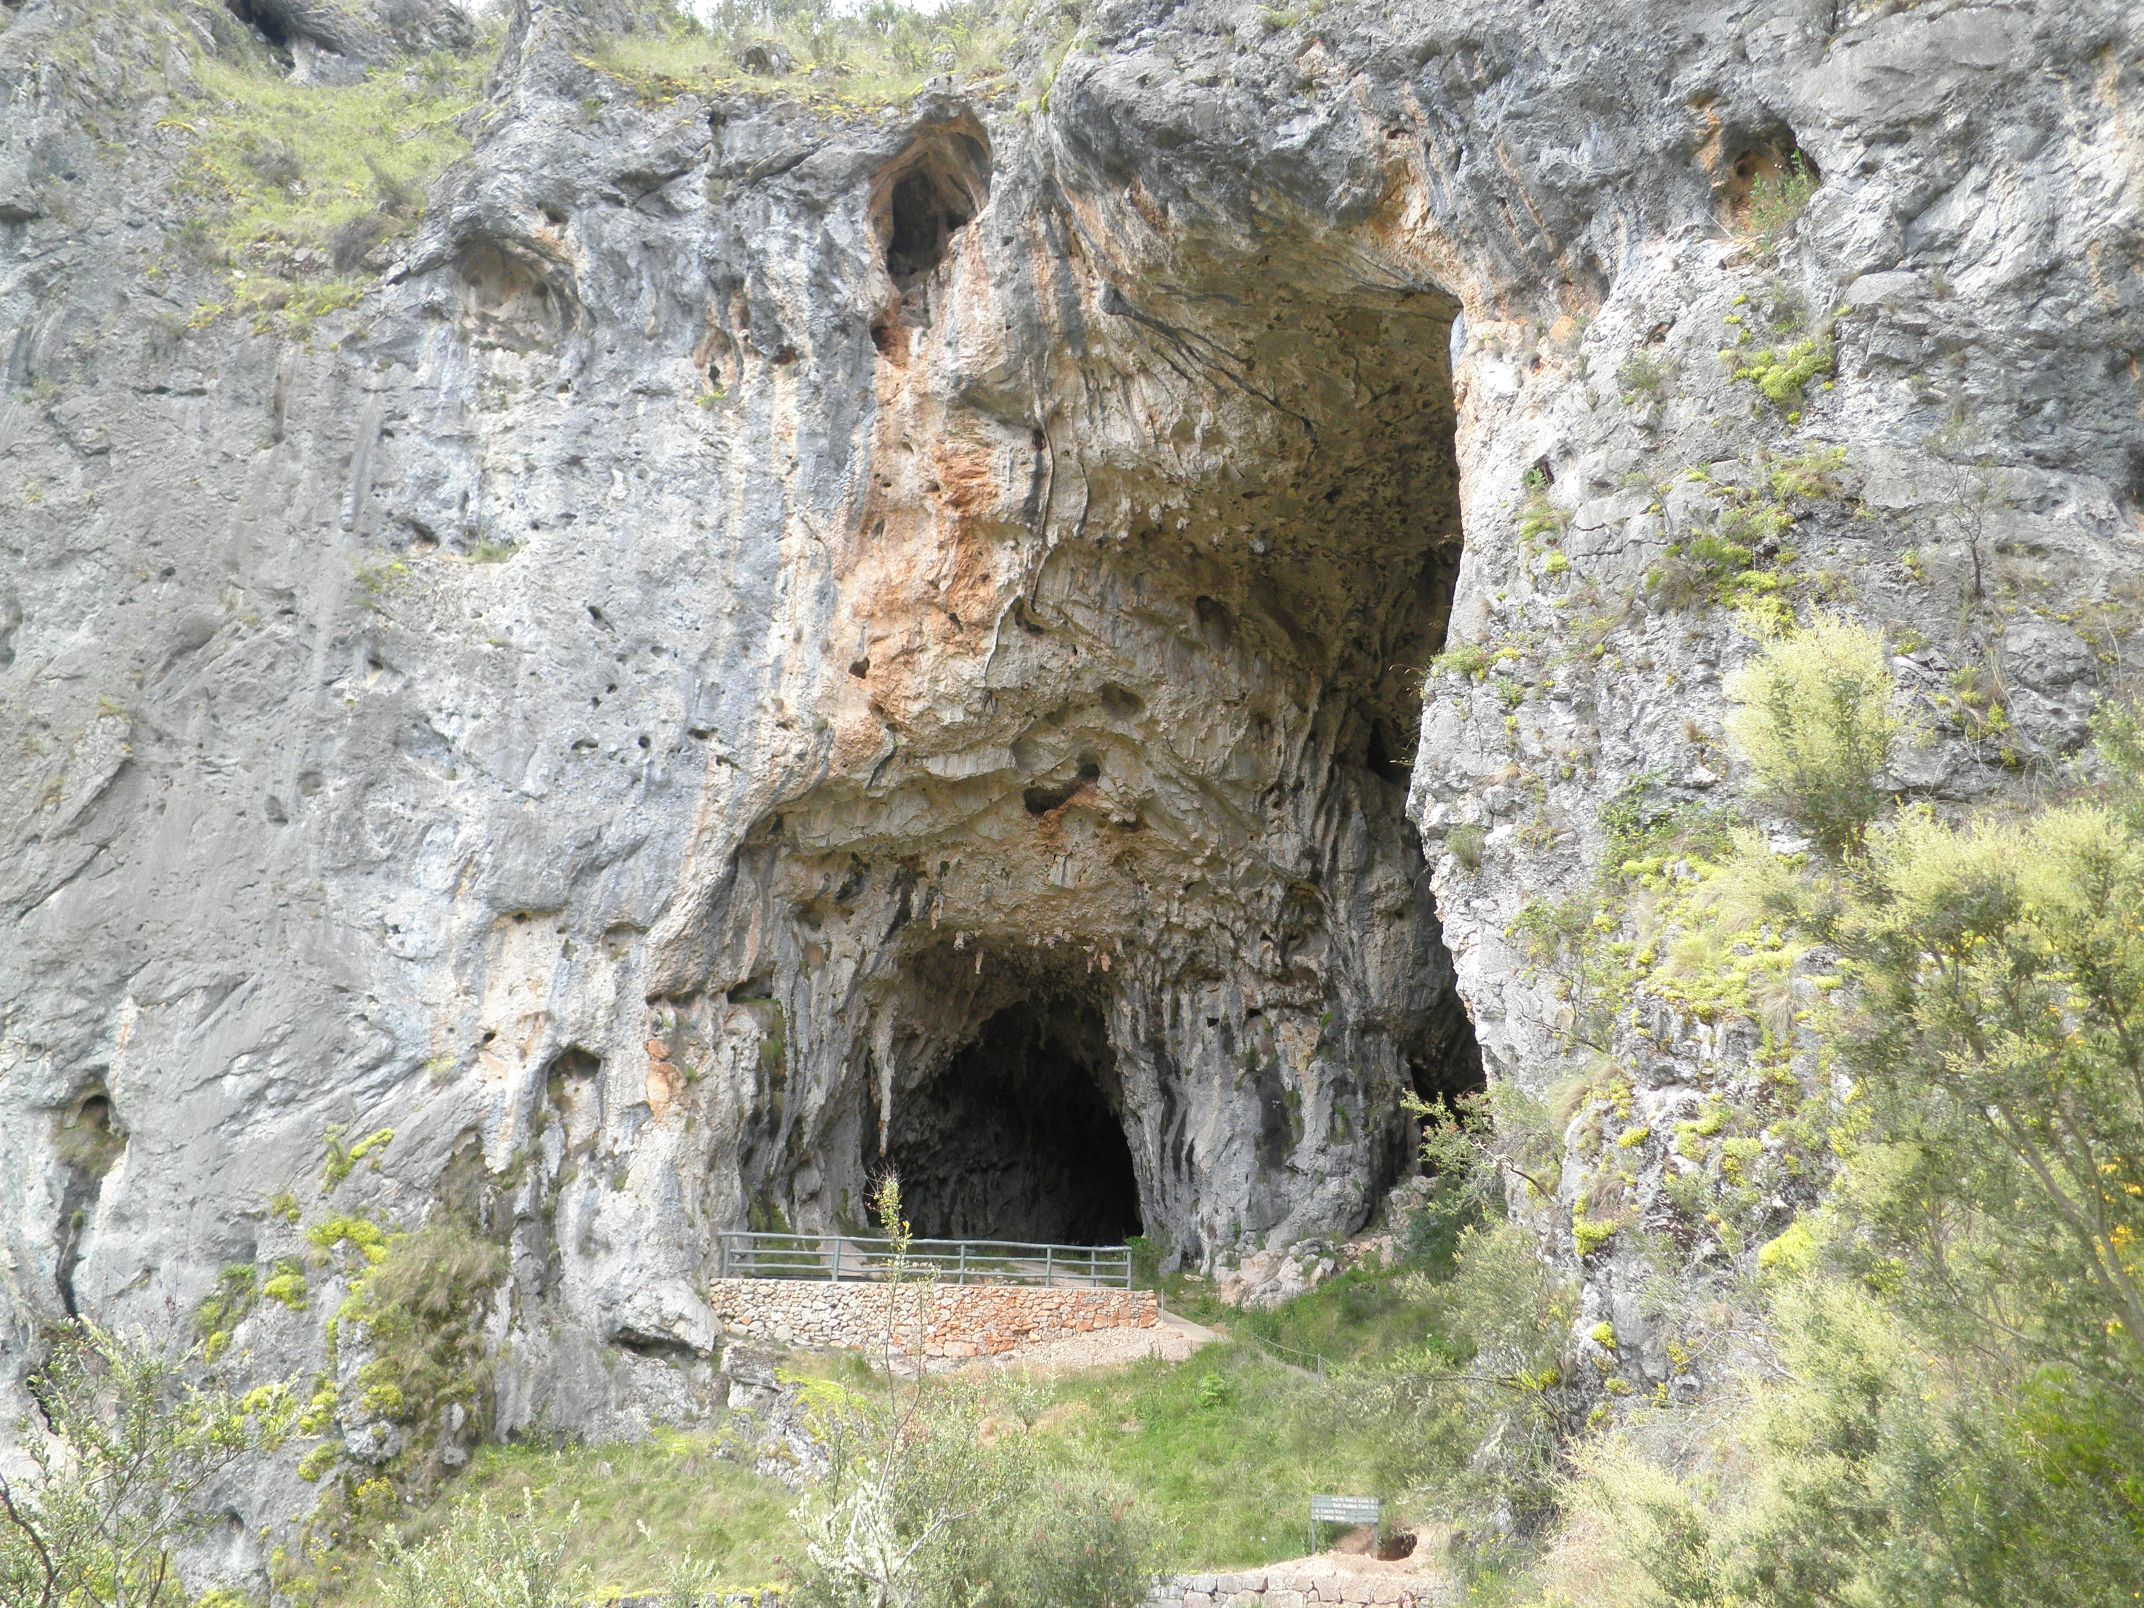 Caves at Yarrangobilly